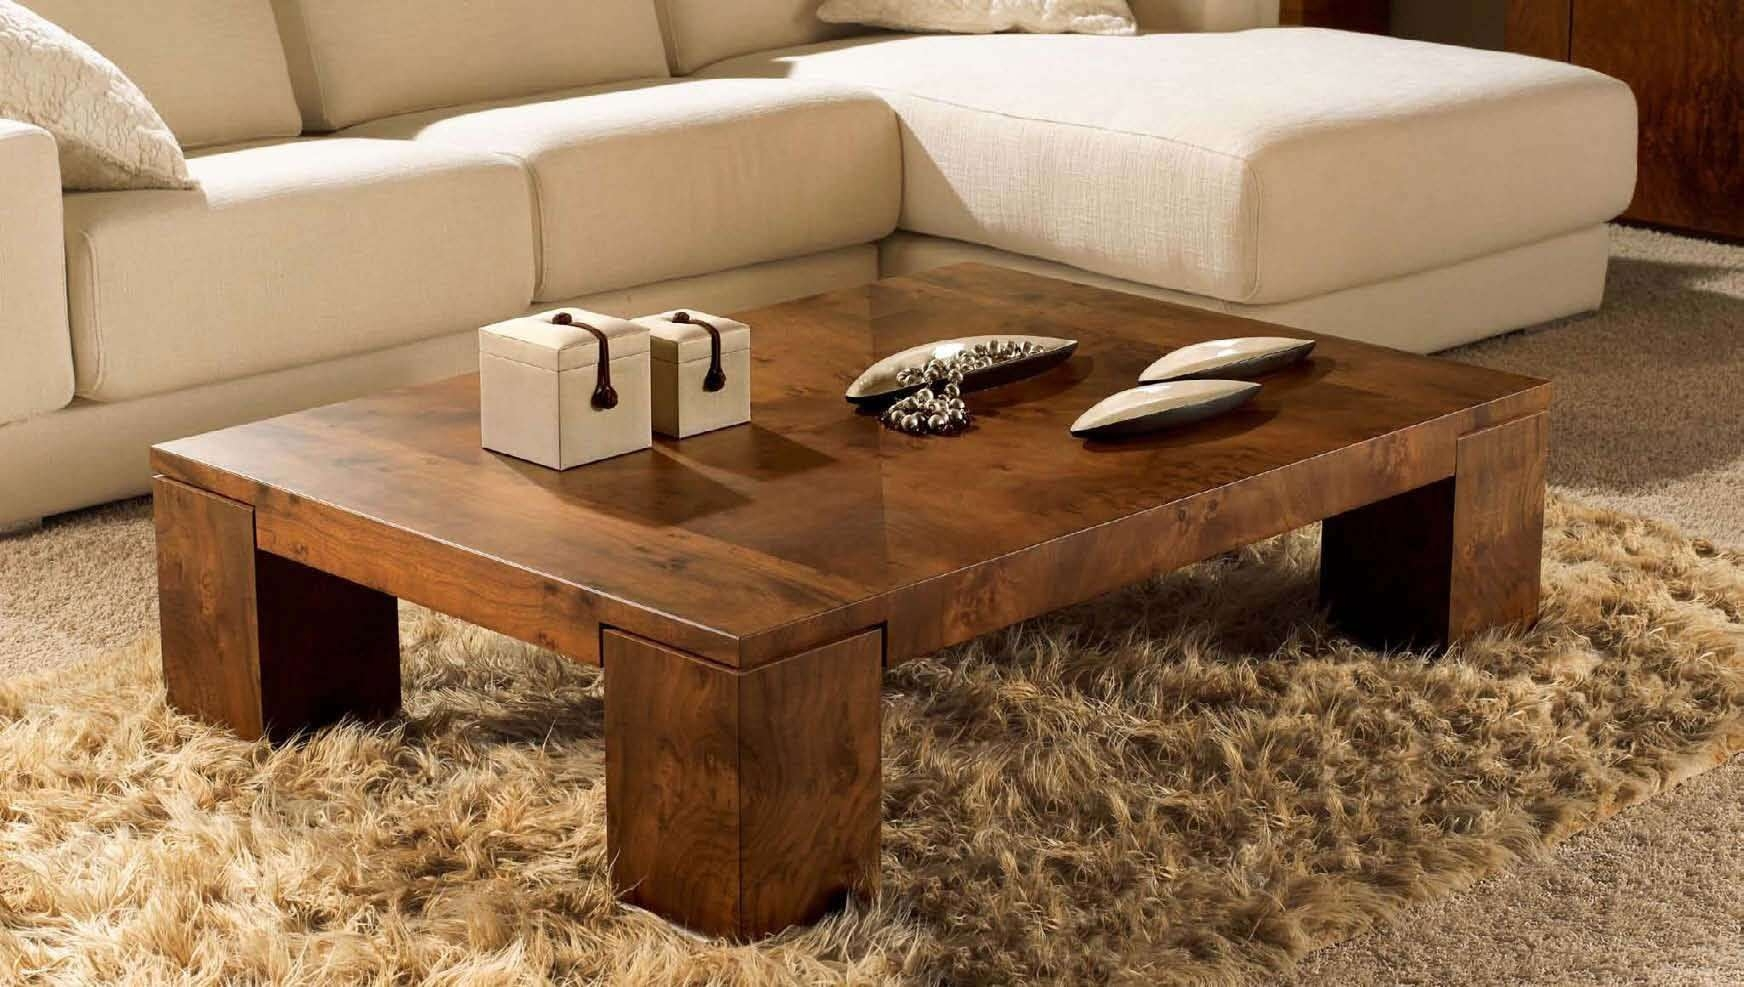 Big Floor Flower Vase Idea Big Vase Decor Set Coffee Tables For Within Most Current Big Square Coffee Tables (View 2 of 20)